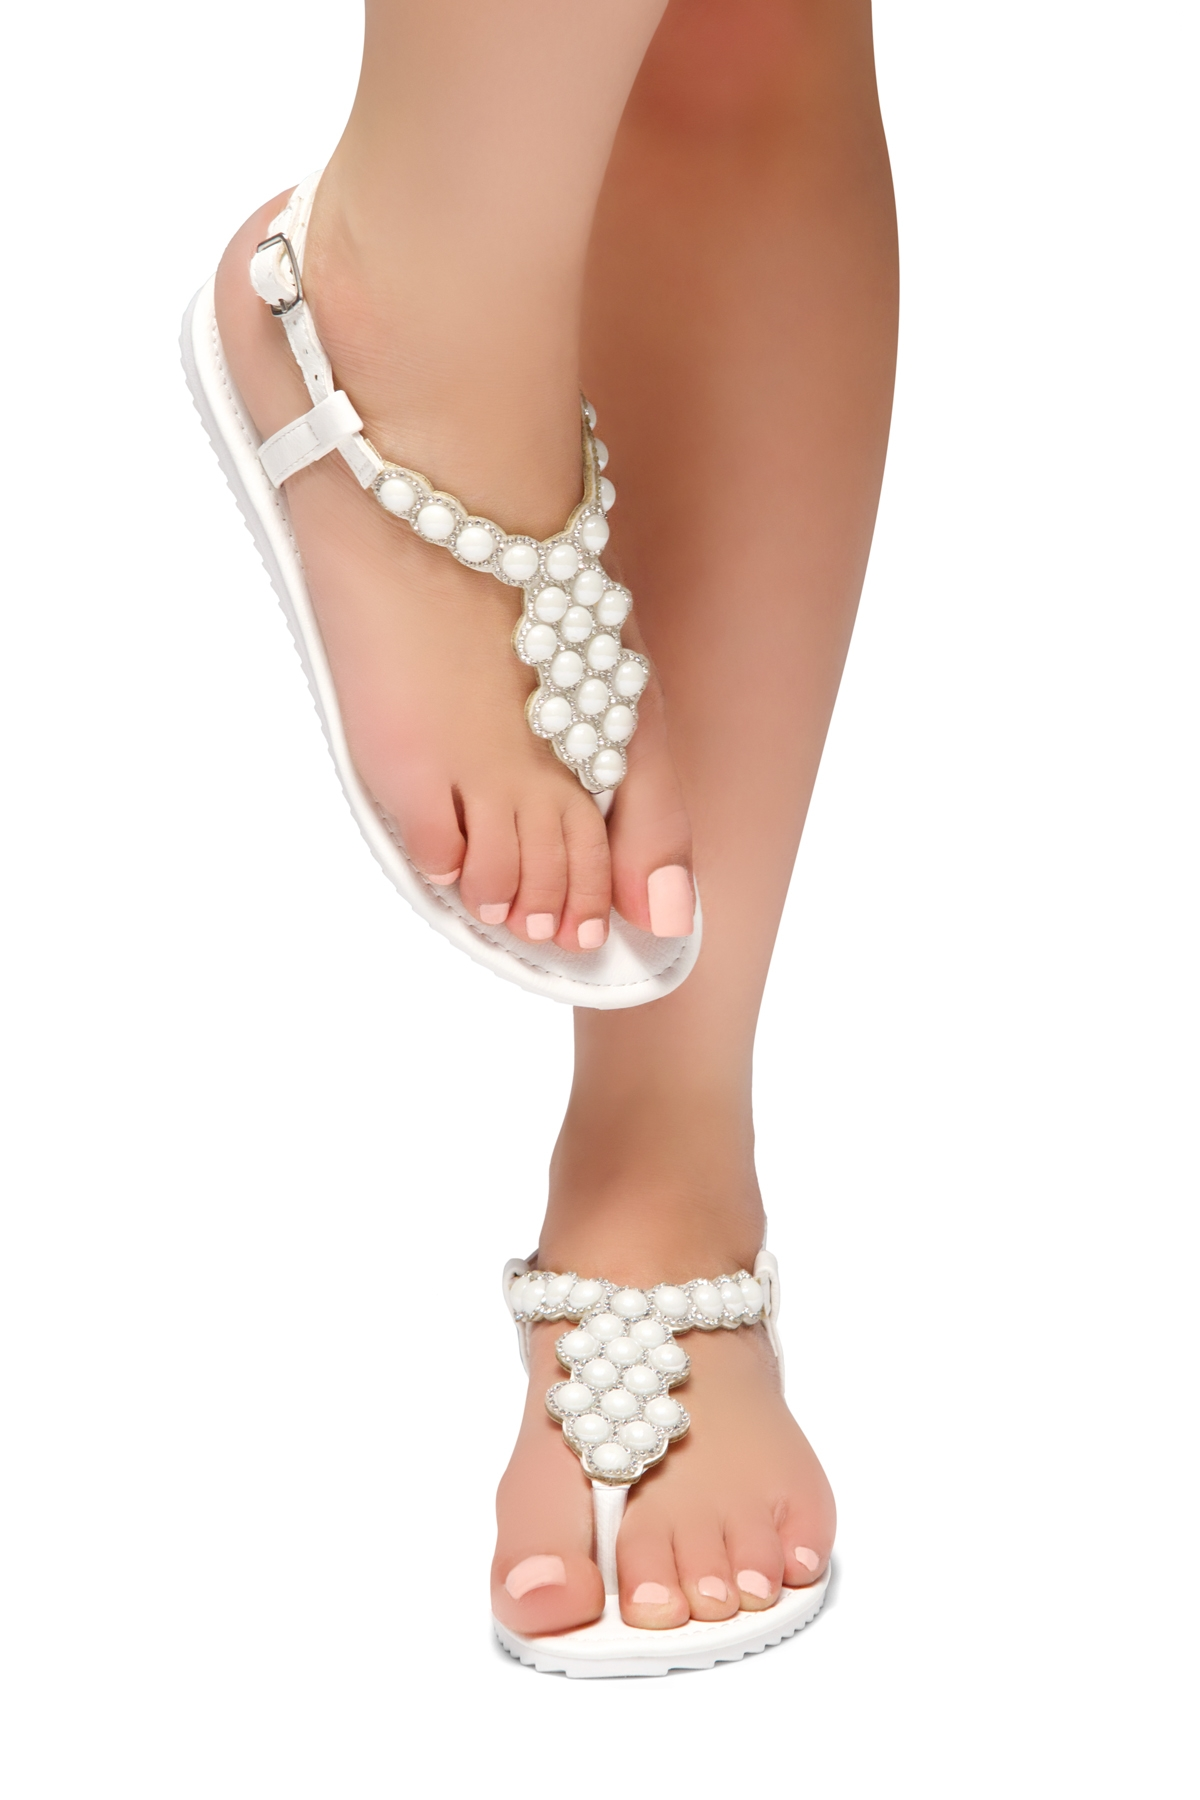 8299a94023d HerStyle Summer Grow- T-Strap Thong Sandals with Patterned Beads Jeweled  Vamp (White)